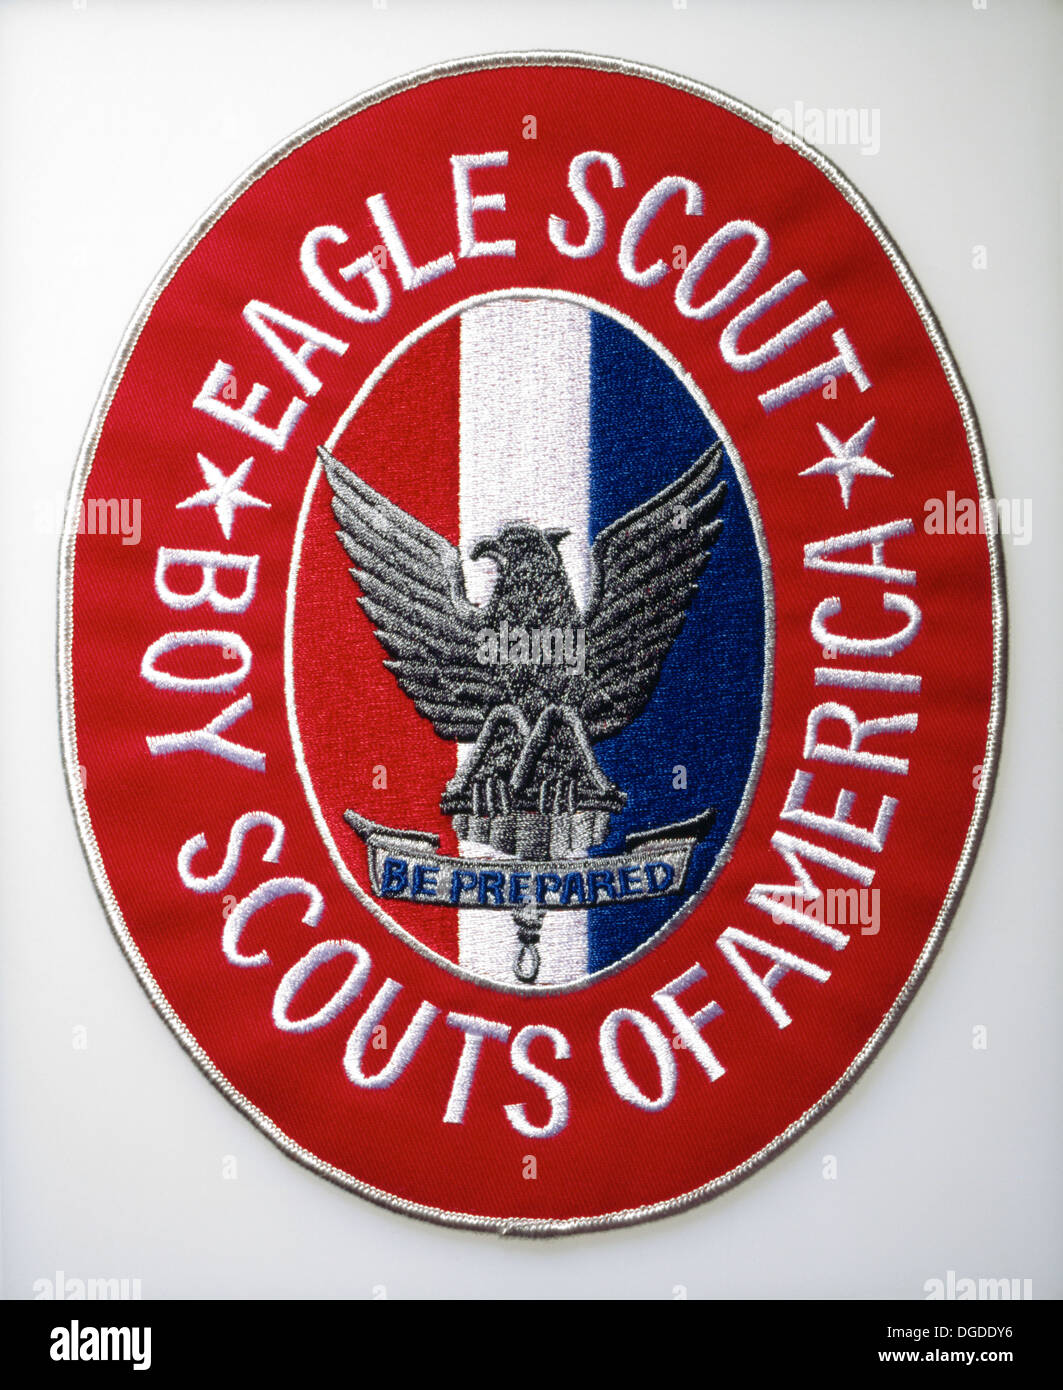 Boy Scout Patch - Stock Image